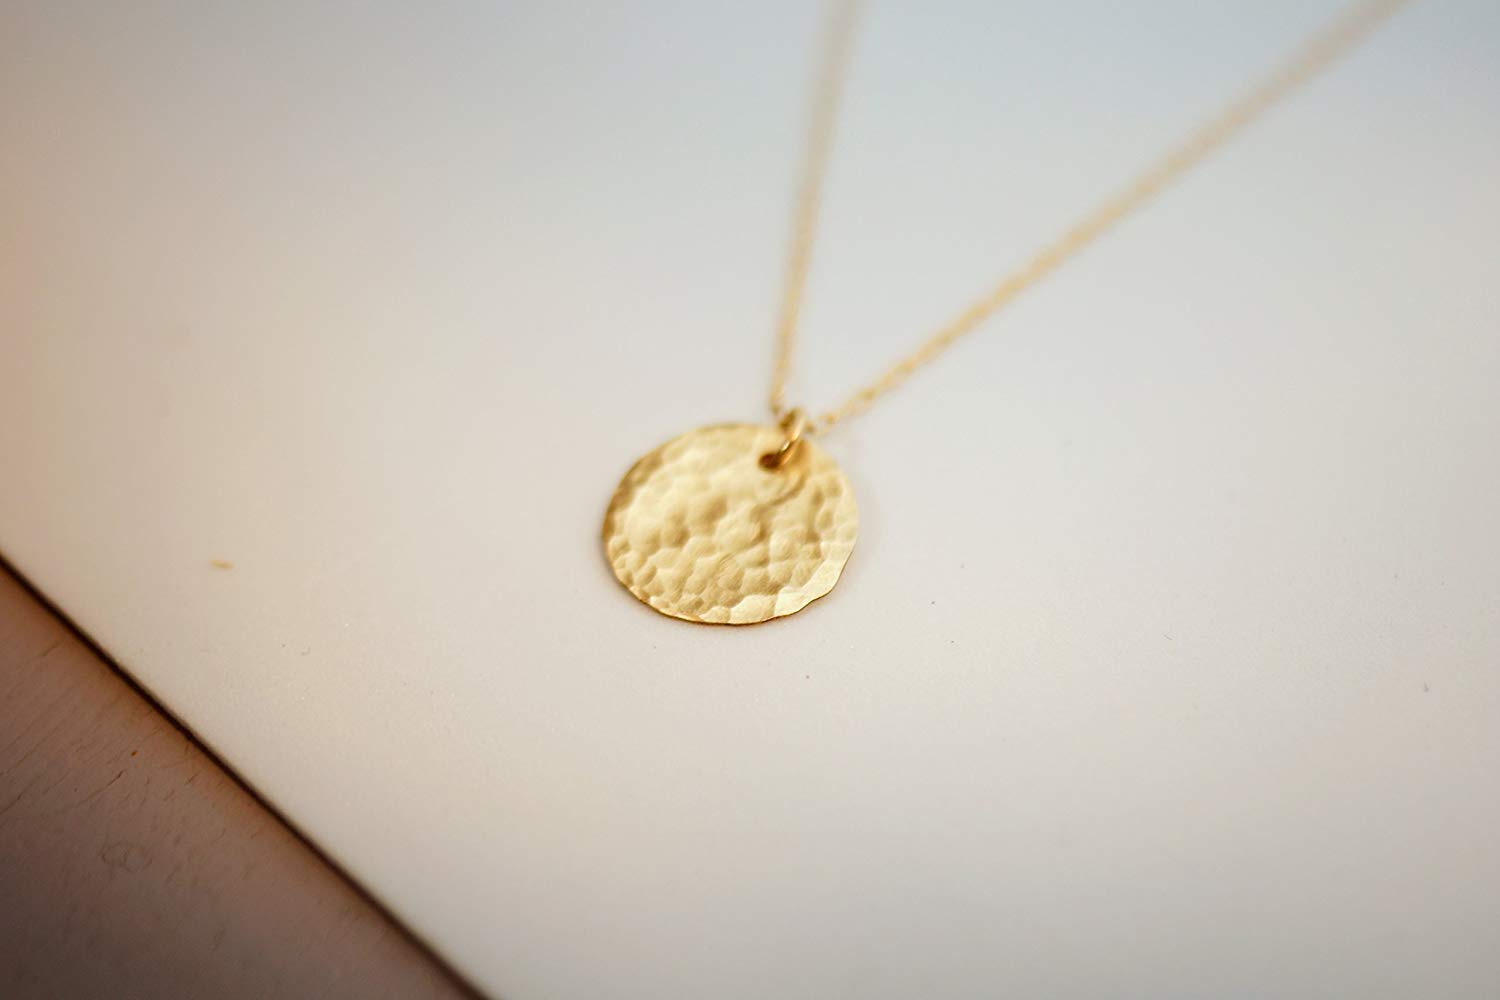 ce4262cb9bde6 Get Quotations · Gold Filled Layered Disc Necklace, Simple Delicate  Everyday Minimalist Jewelry, Artisan Handmade Design